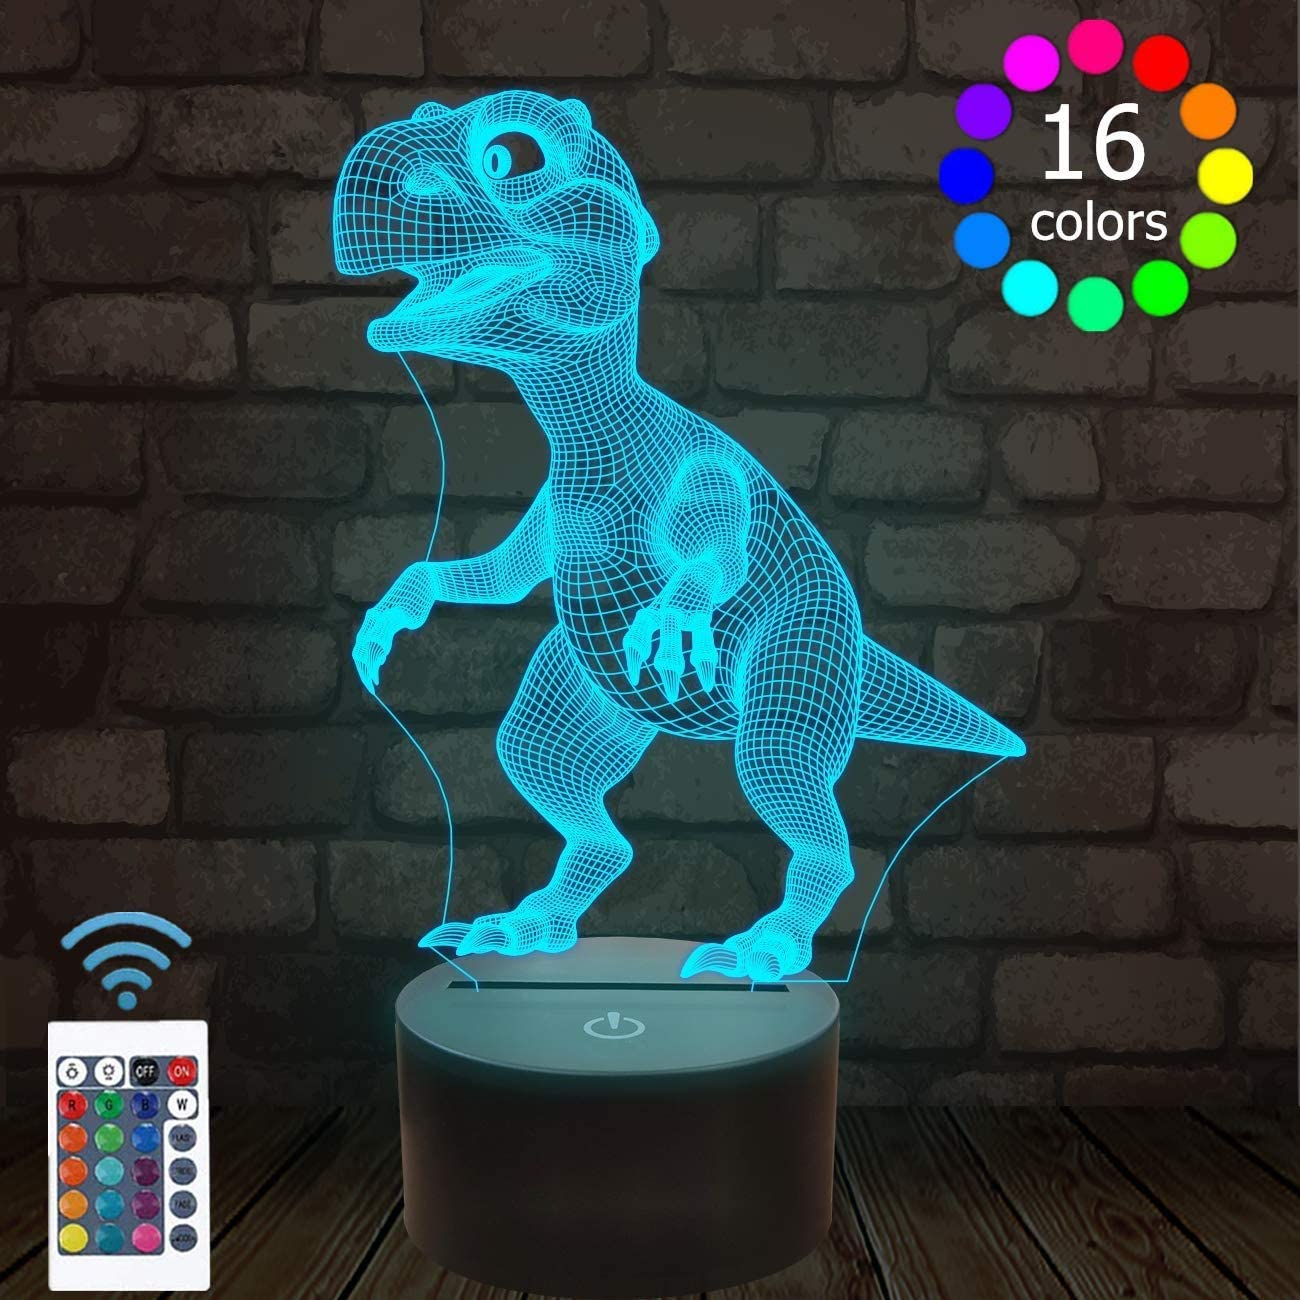 Winzwon 3D night light 16 Models Touch Control Optique LED Illusion Lamp Smart Home Night Lightst avec USB c/âble de charge pour Home Decor Cheval enfants 3D Lampes Lllusions Optiques